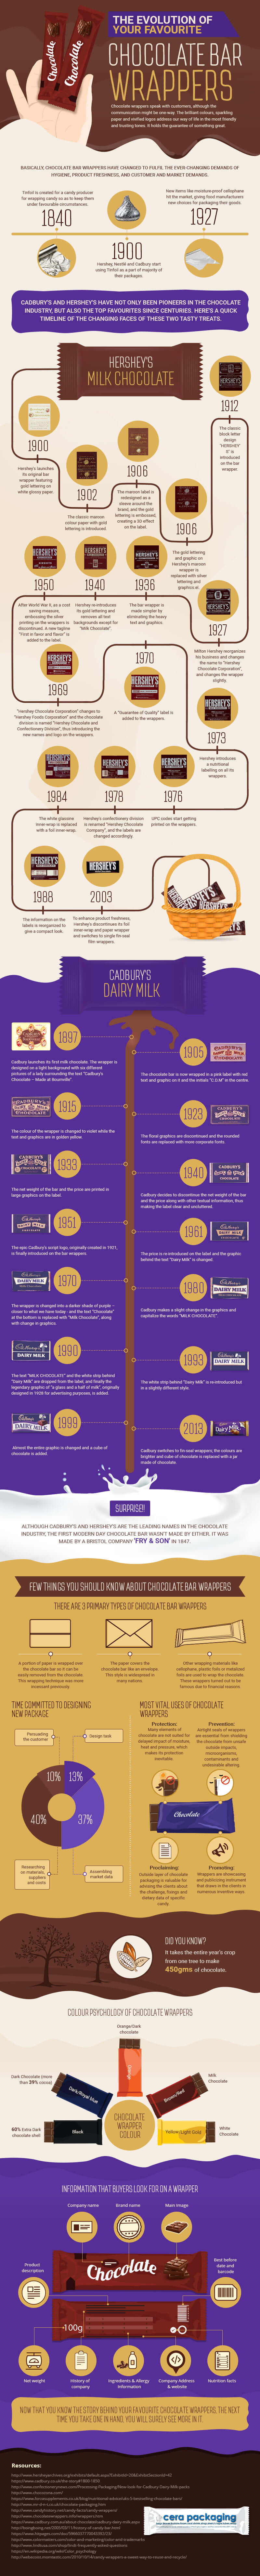 Chocolate Bar Packaging Evolution - Check out this great infographic